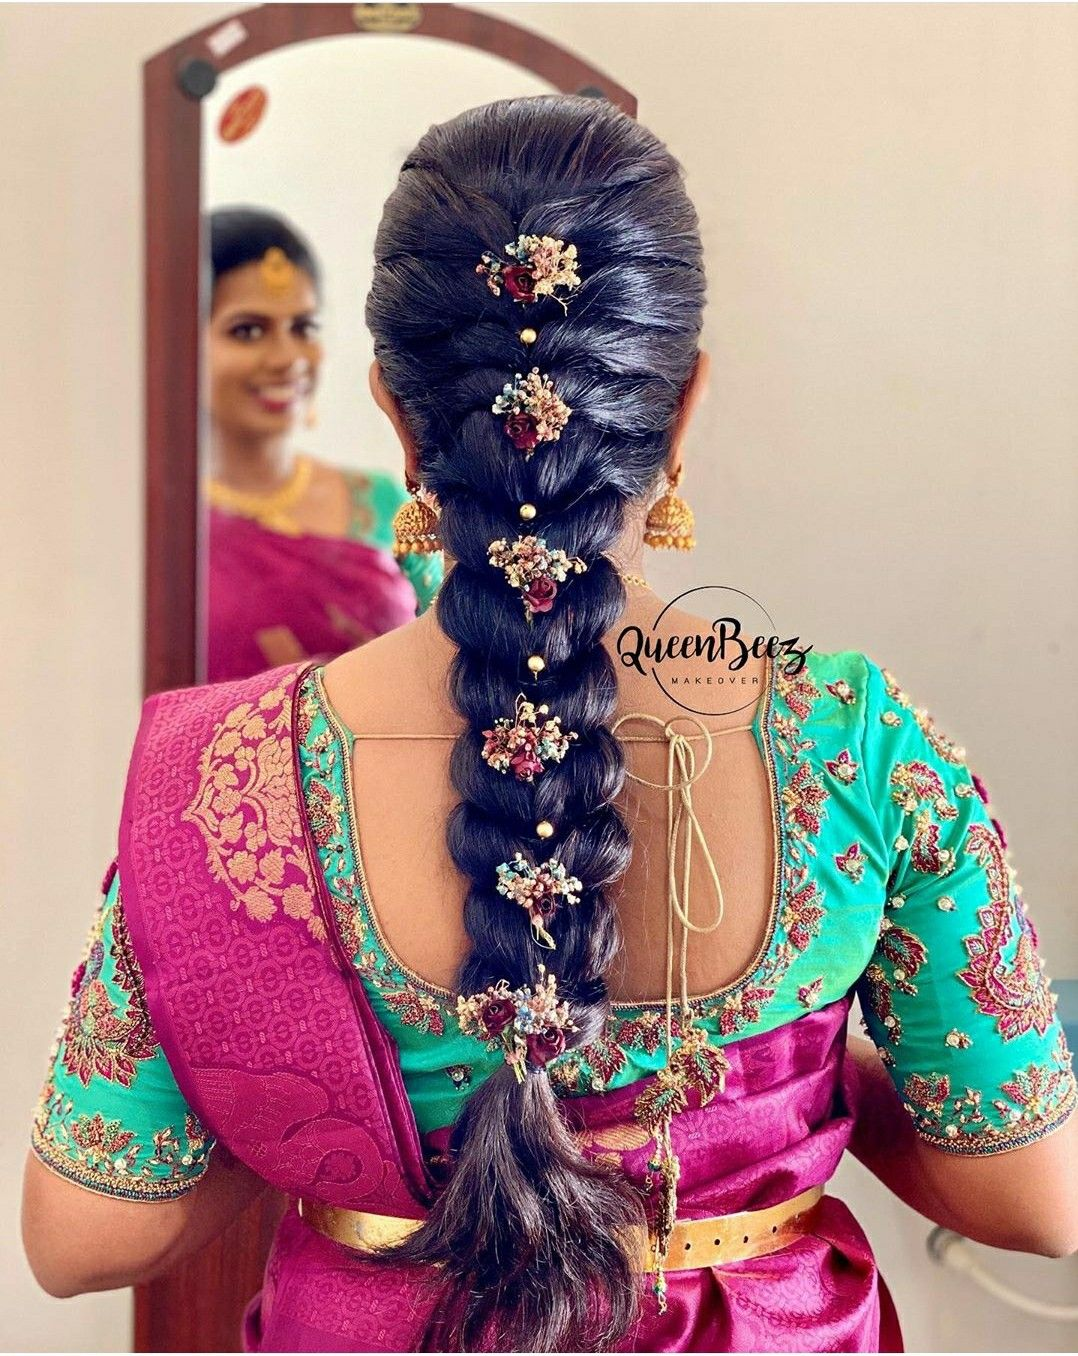 Pin By Anjana Chaganti On Designer Blouses Hair Styles Indian Bride Hairstyle Engagement Hairstyles